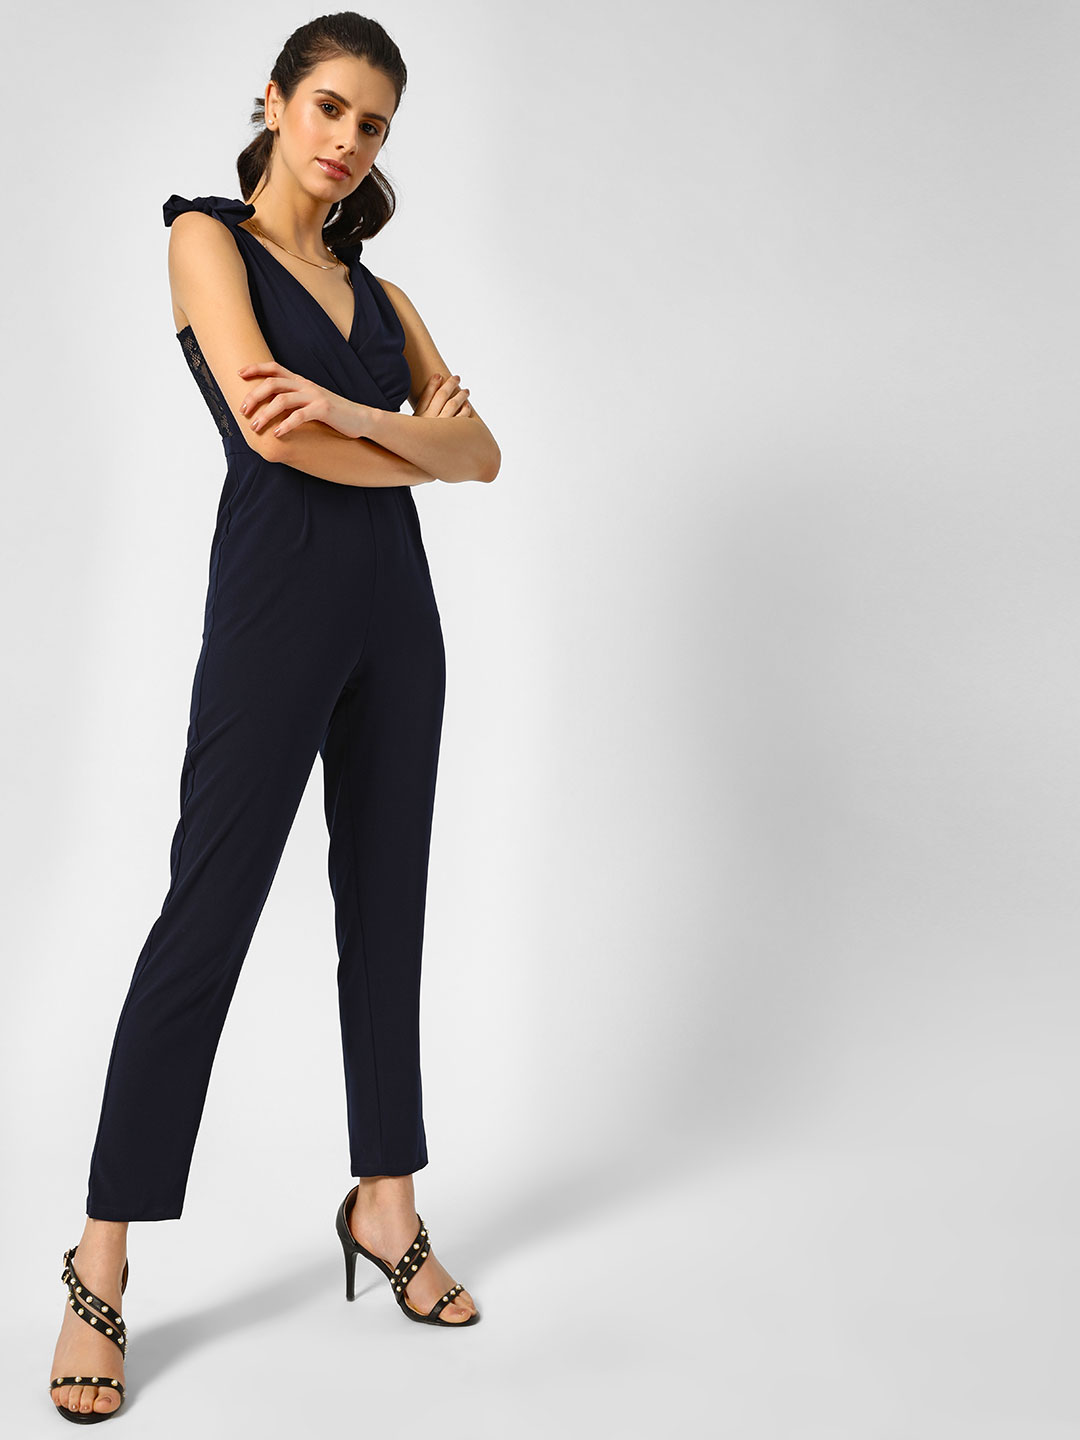 Moguland Blue Navy Tie-up Shoulder Jumpsuit 1